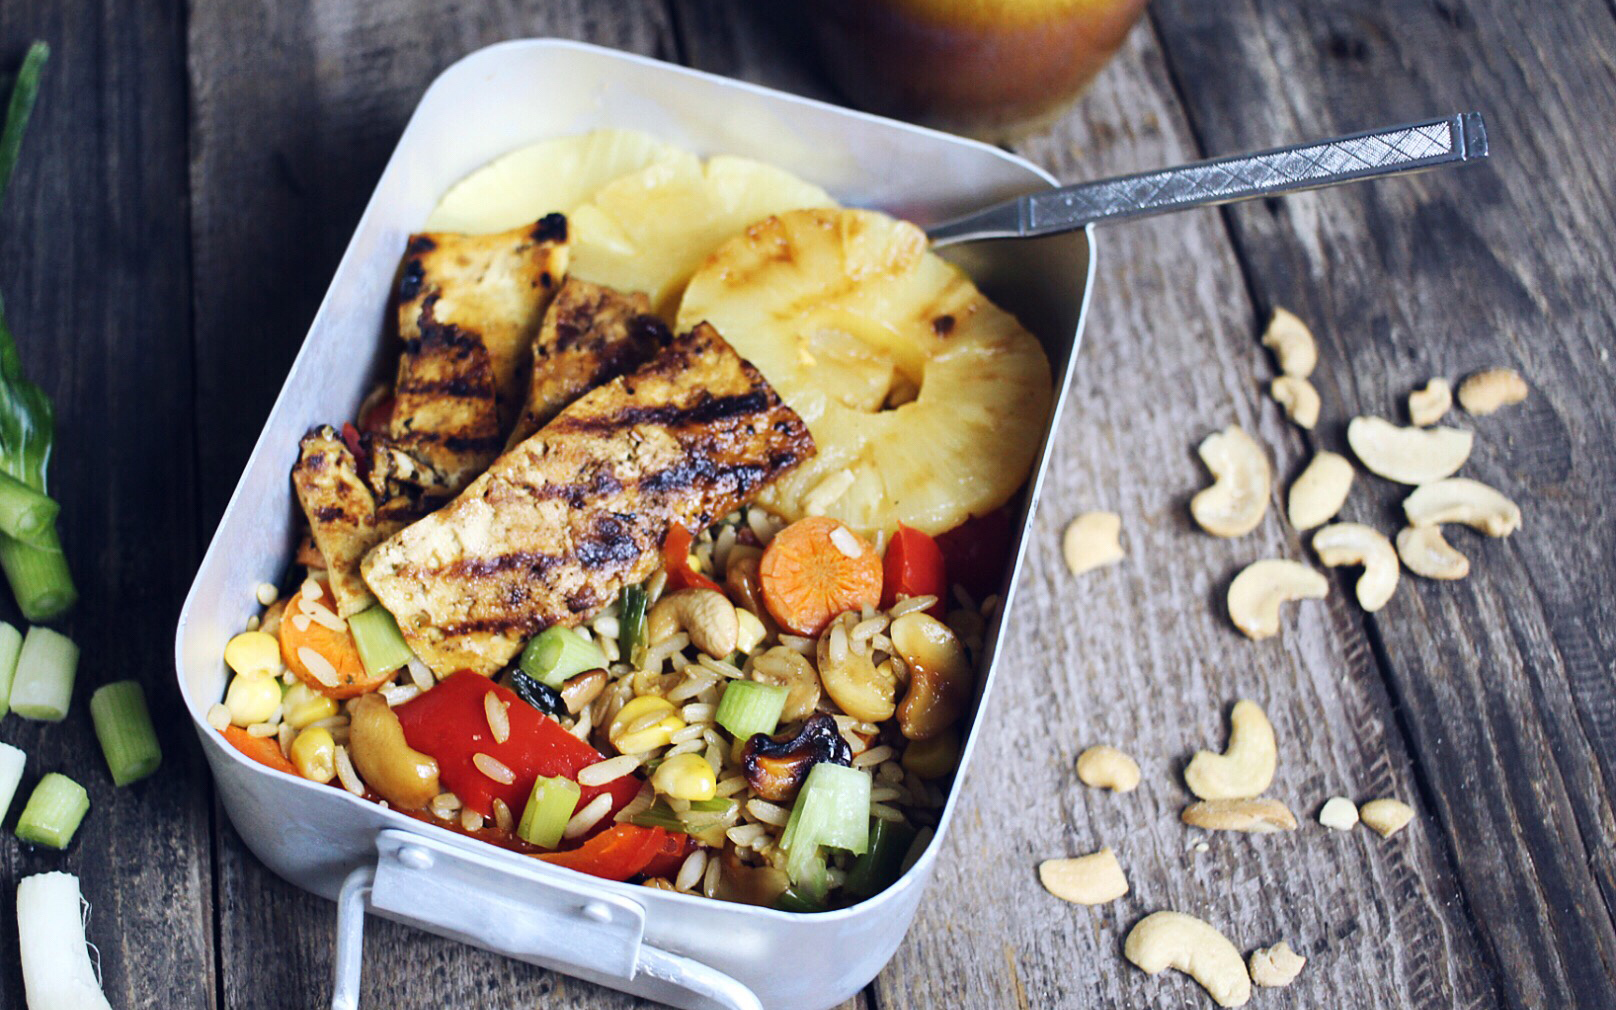 Pineapple and Cashew Stir Fry with Caramelized Tofu